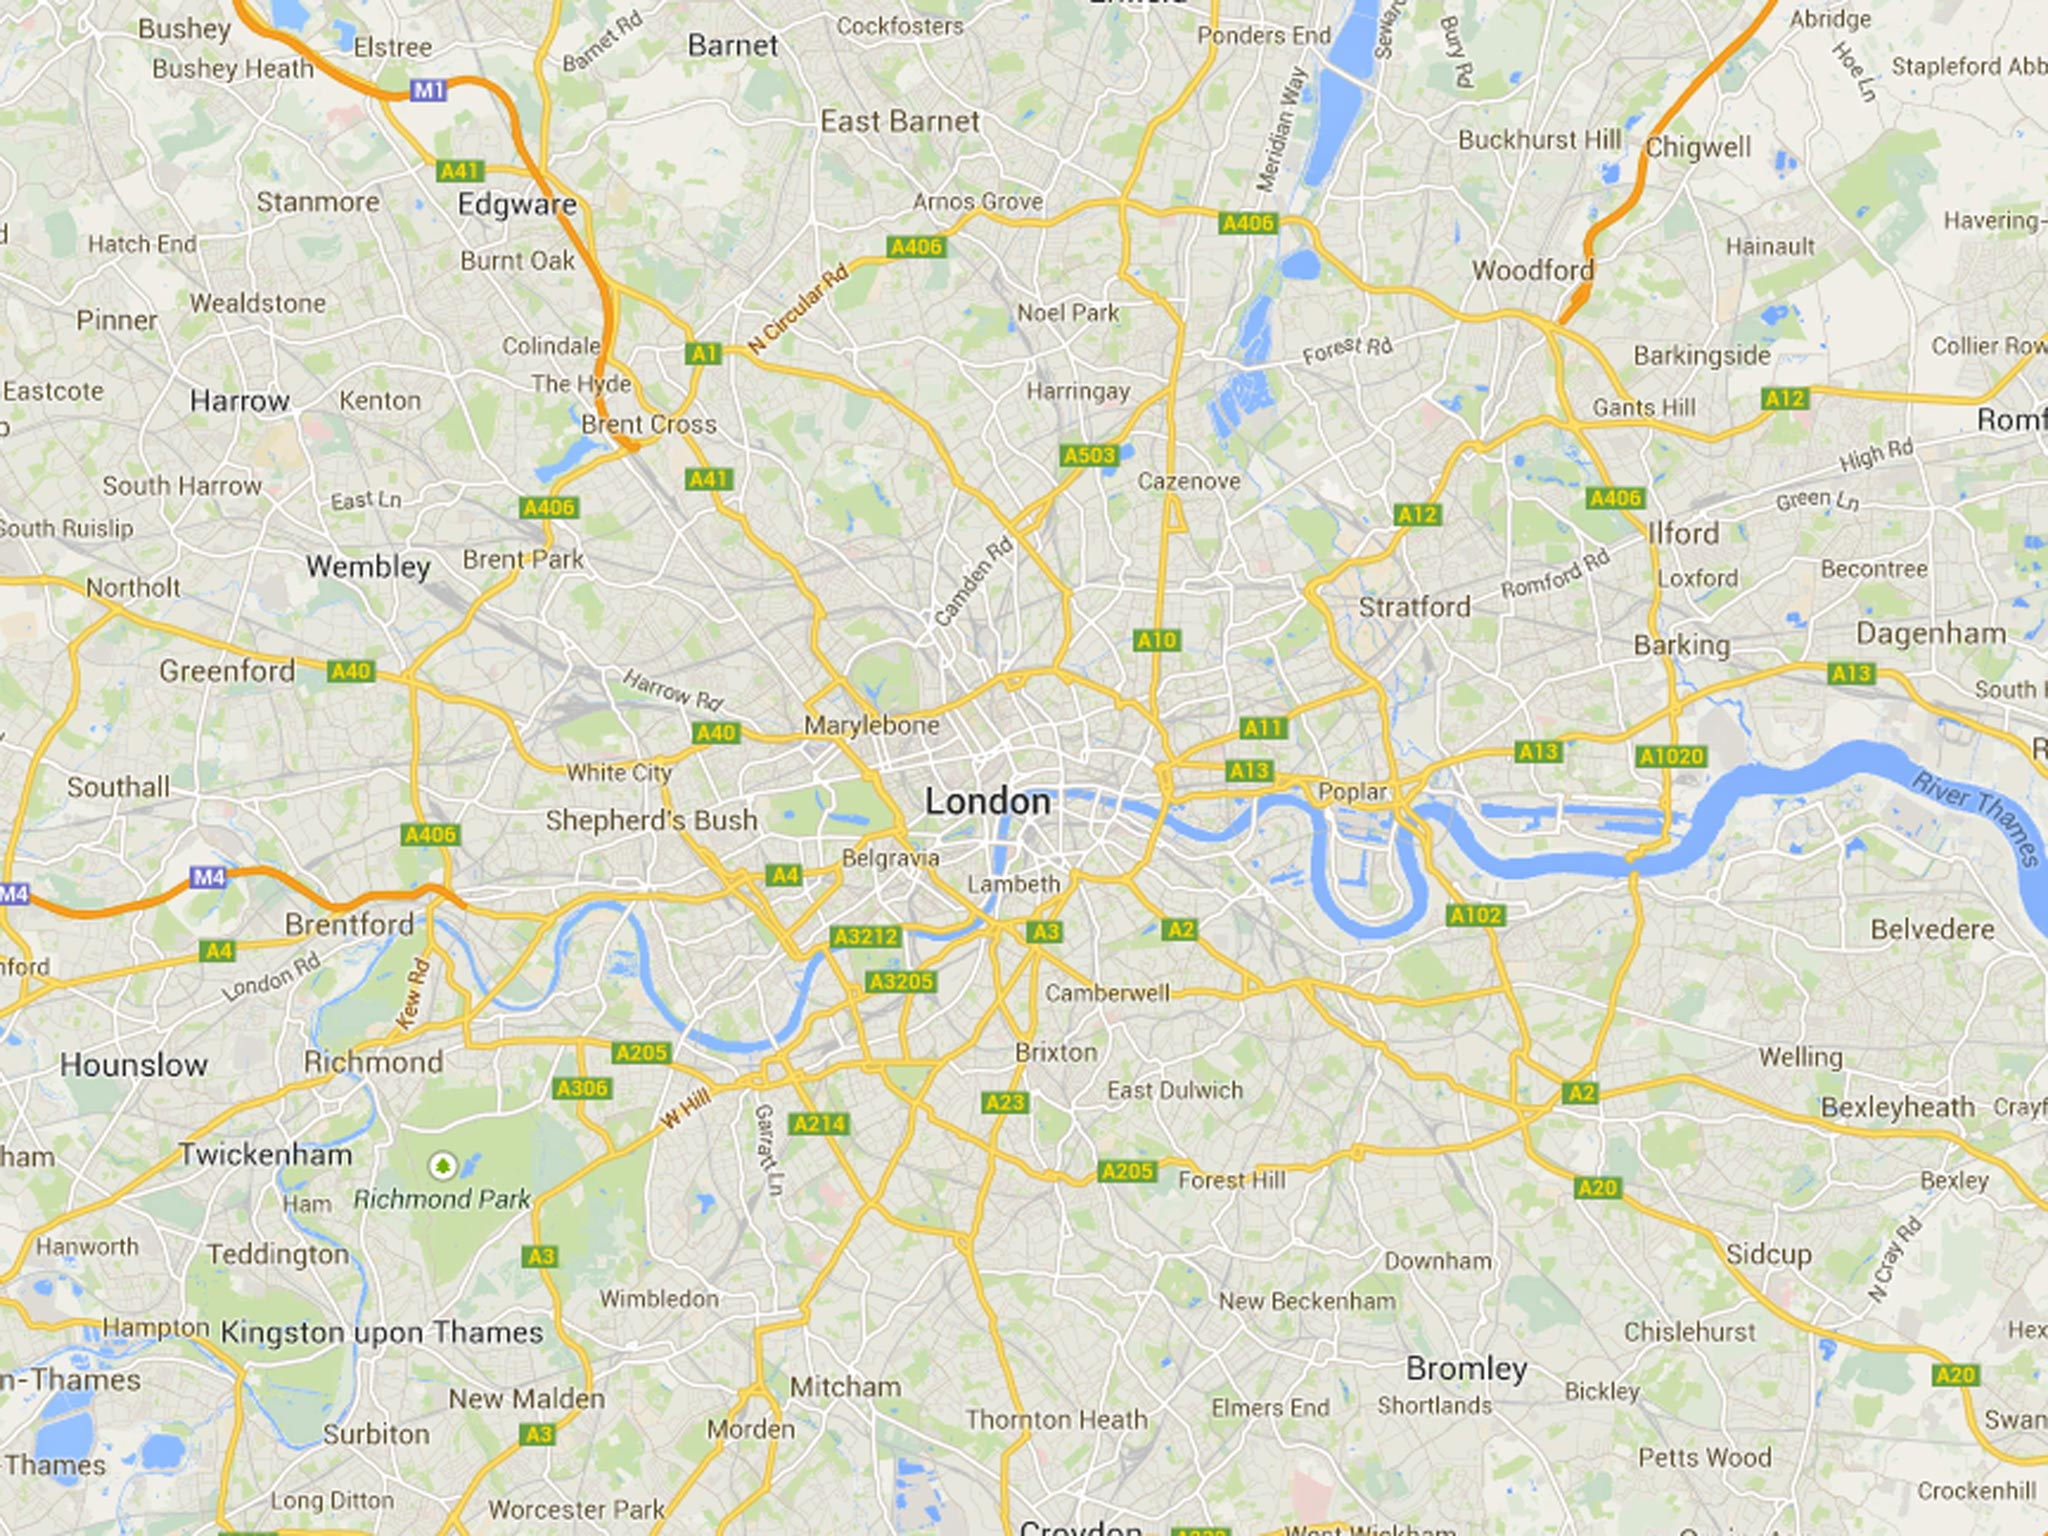 Google expands mobile push with ads in its maps app lovely mobile news 26783 rzz3bt google gumiabroncs Gallery